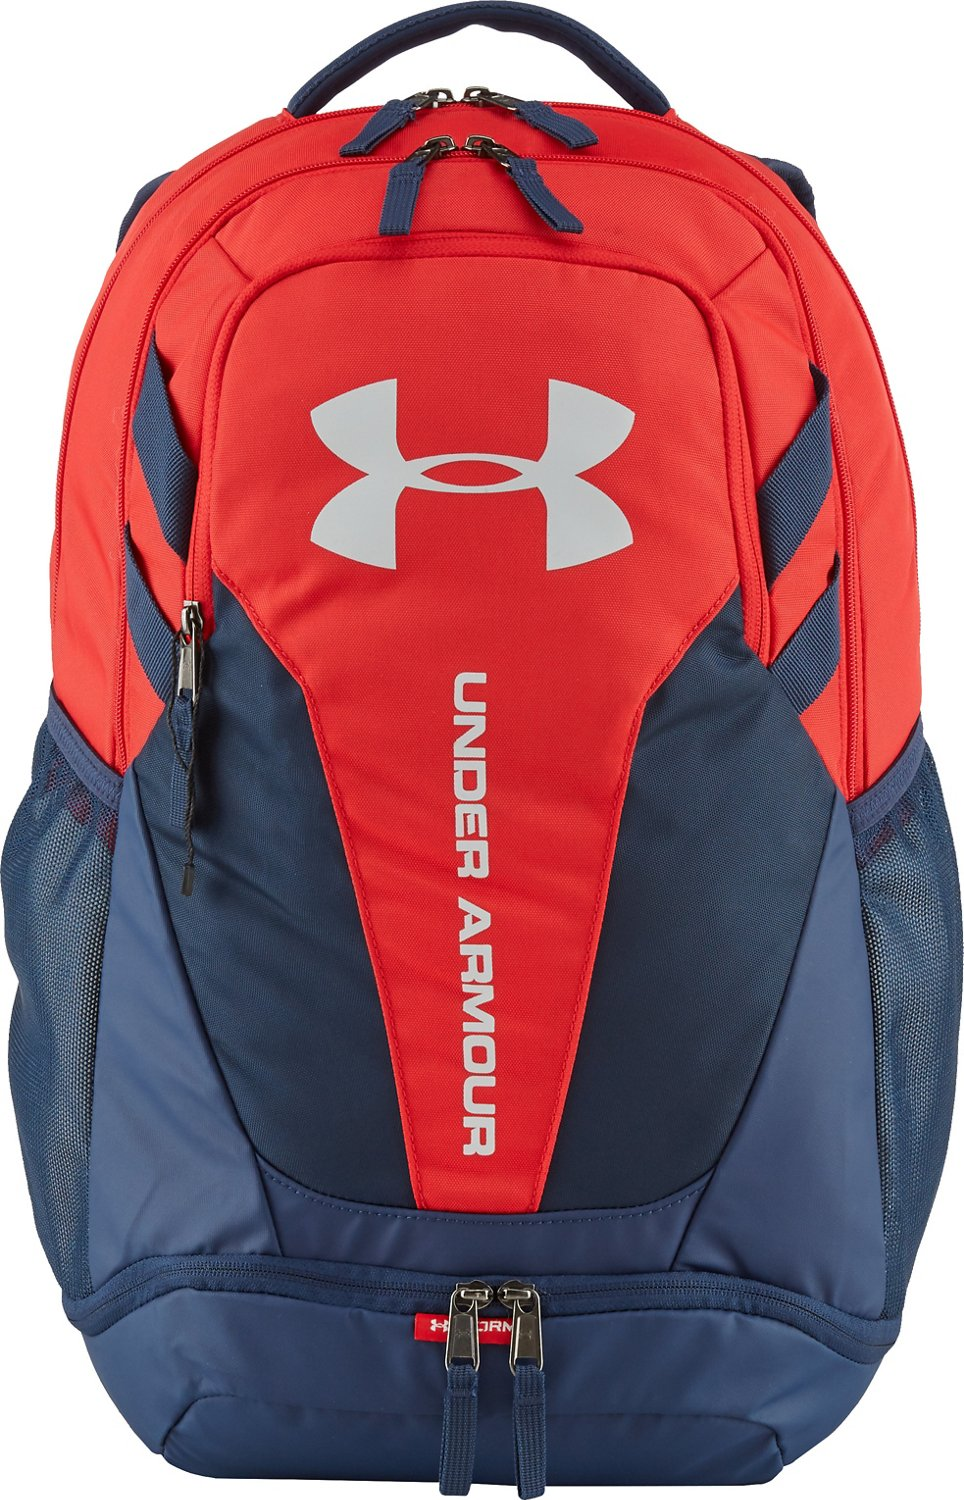 Teal Under Armor Book Bags